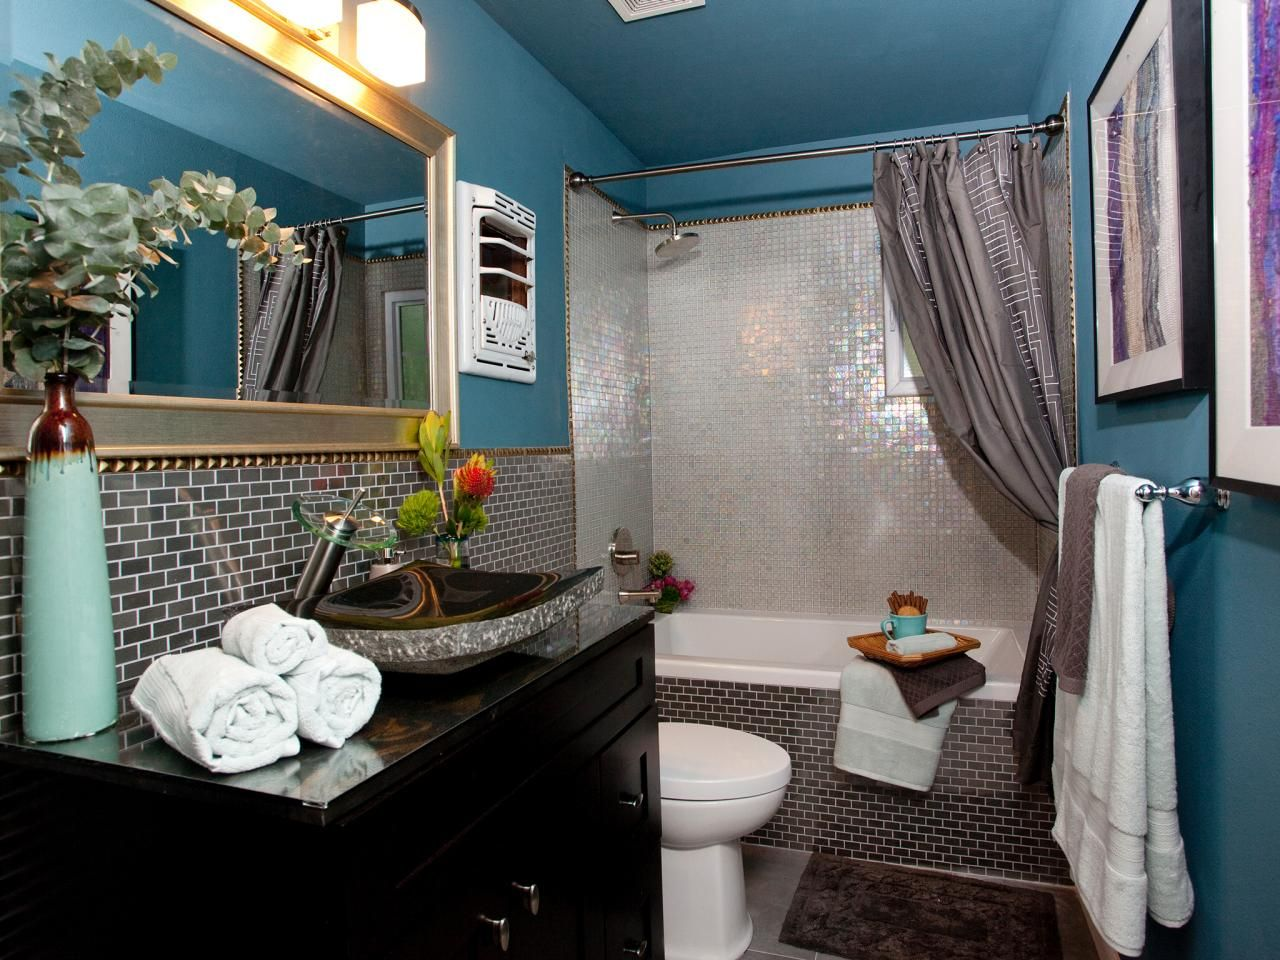 small bathroom decorating ideas | glass mosaic tiles, vanities and